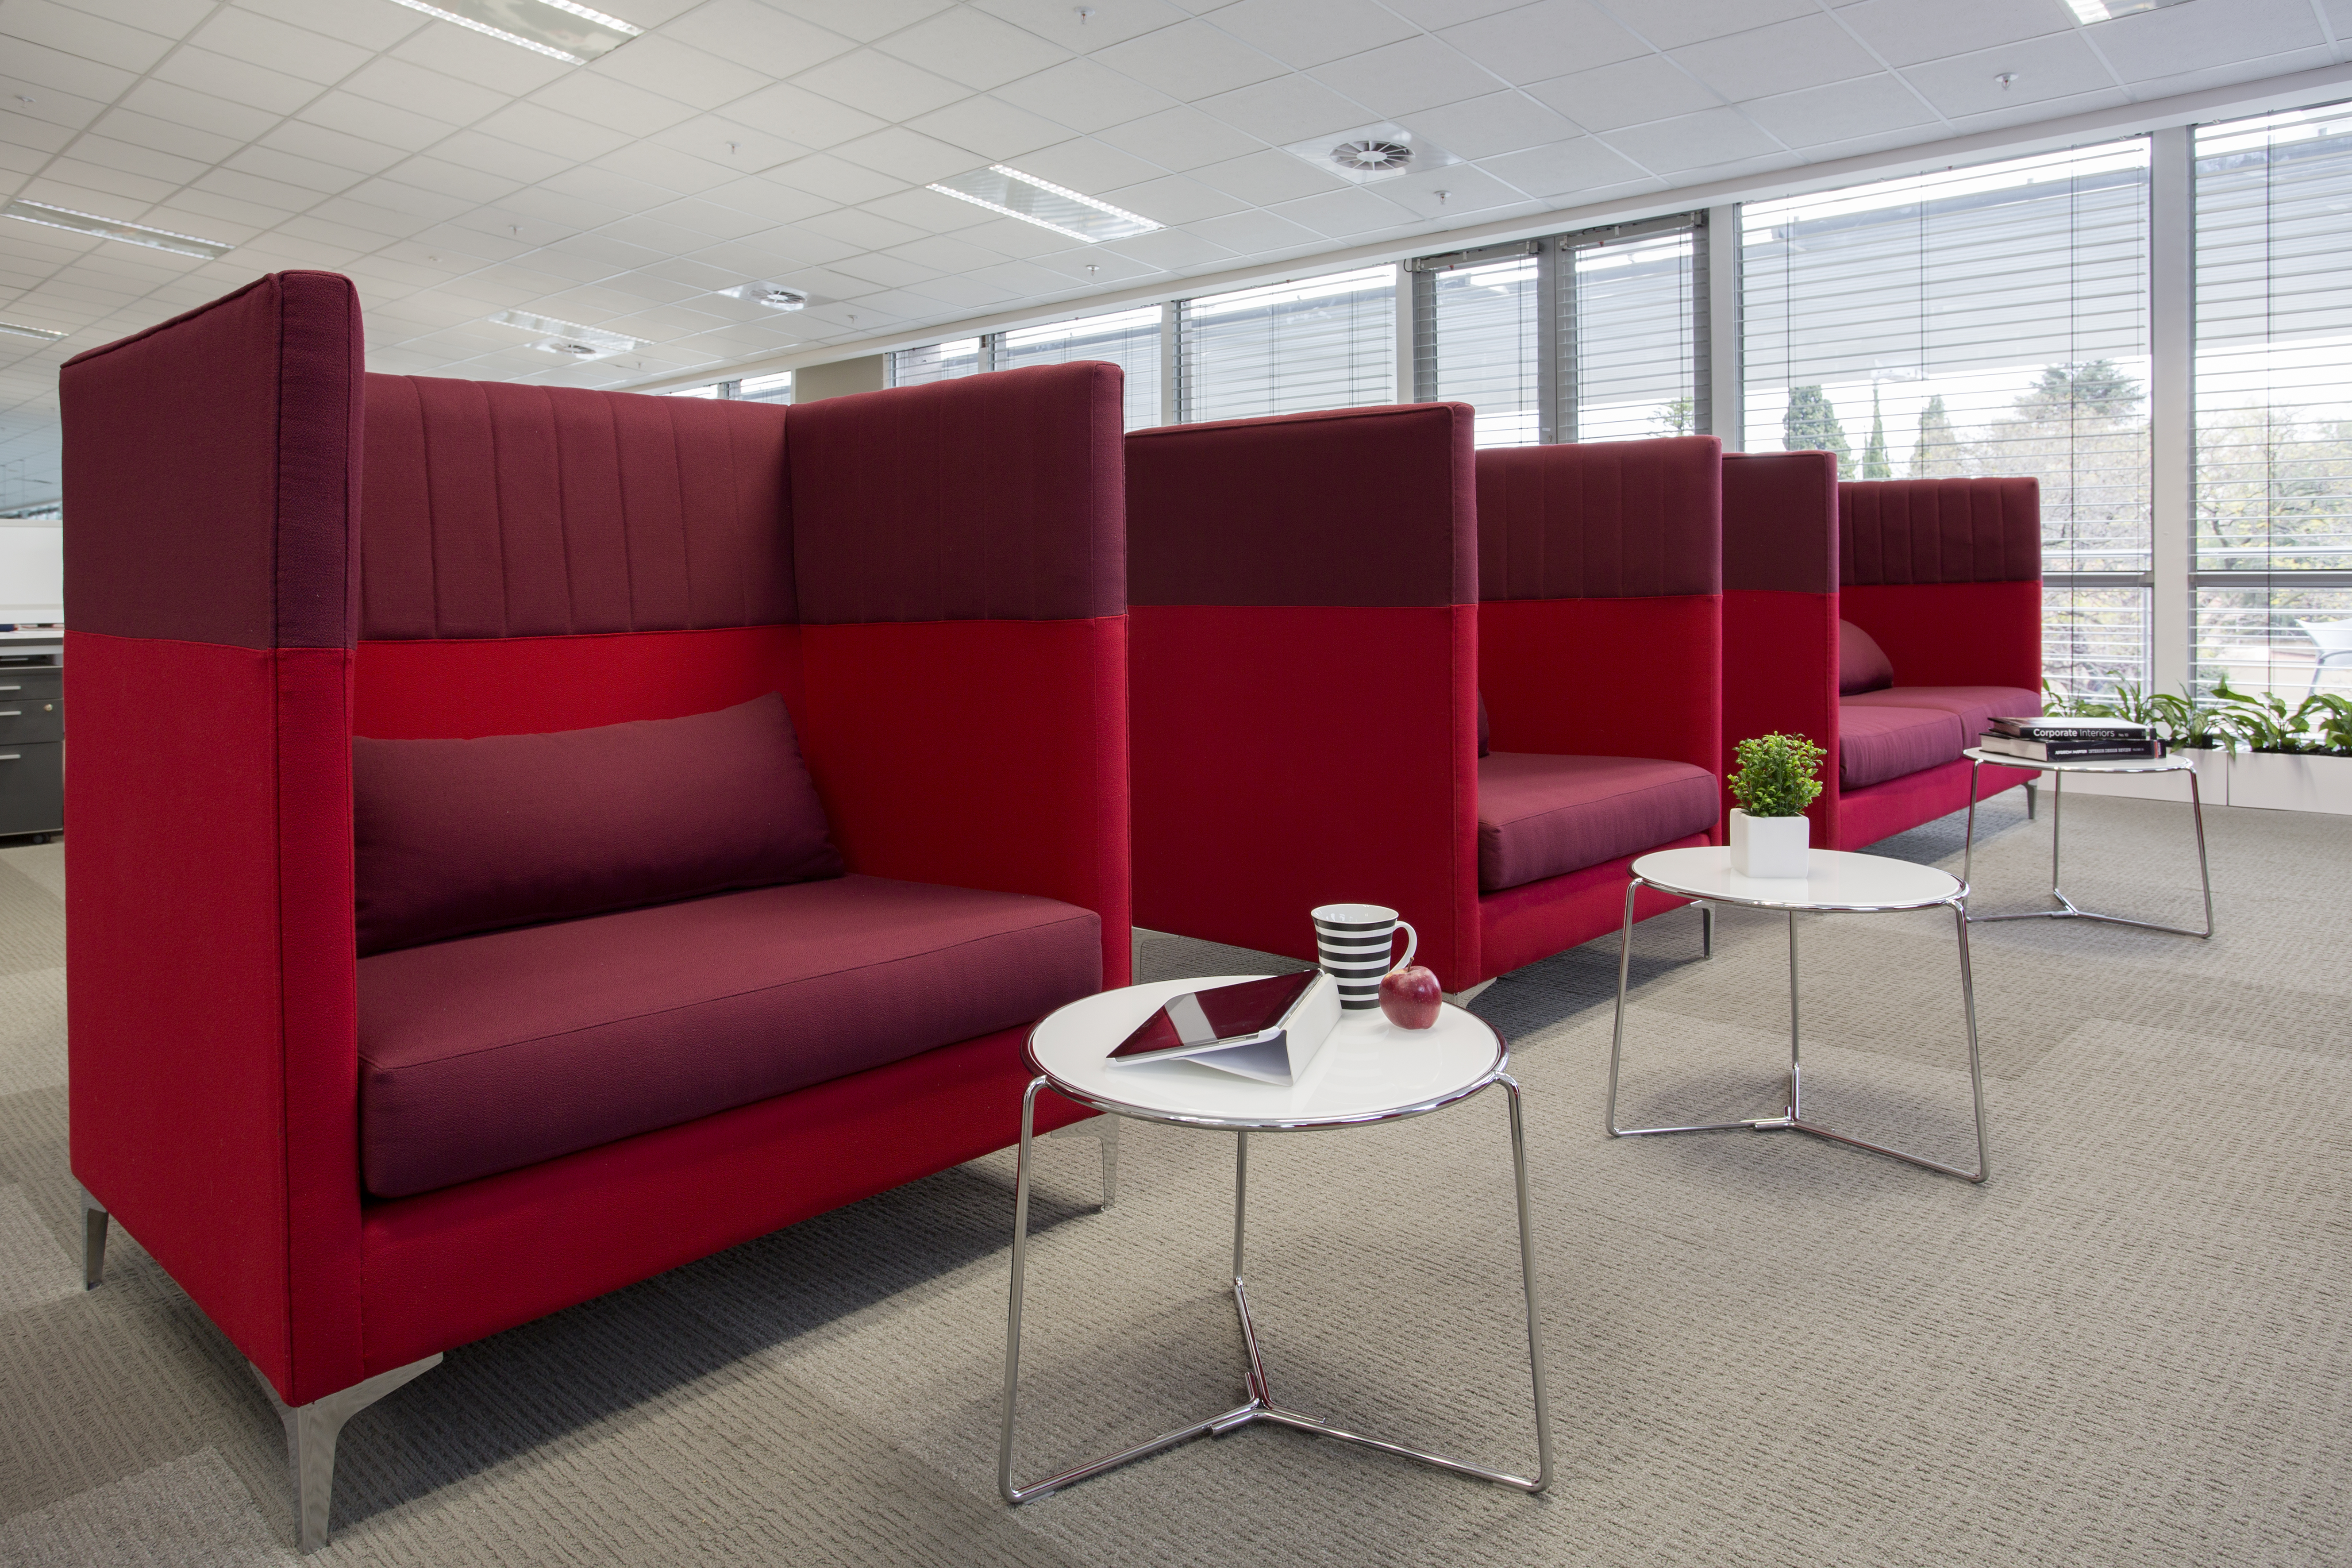 A large red chair in a room Description generated with very high confidence